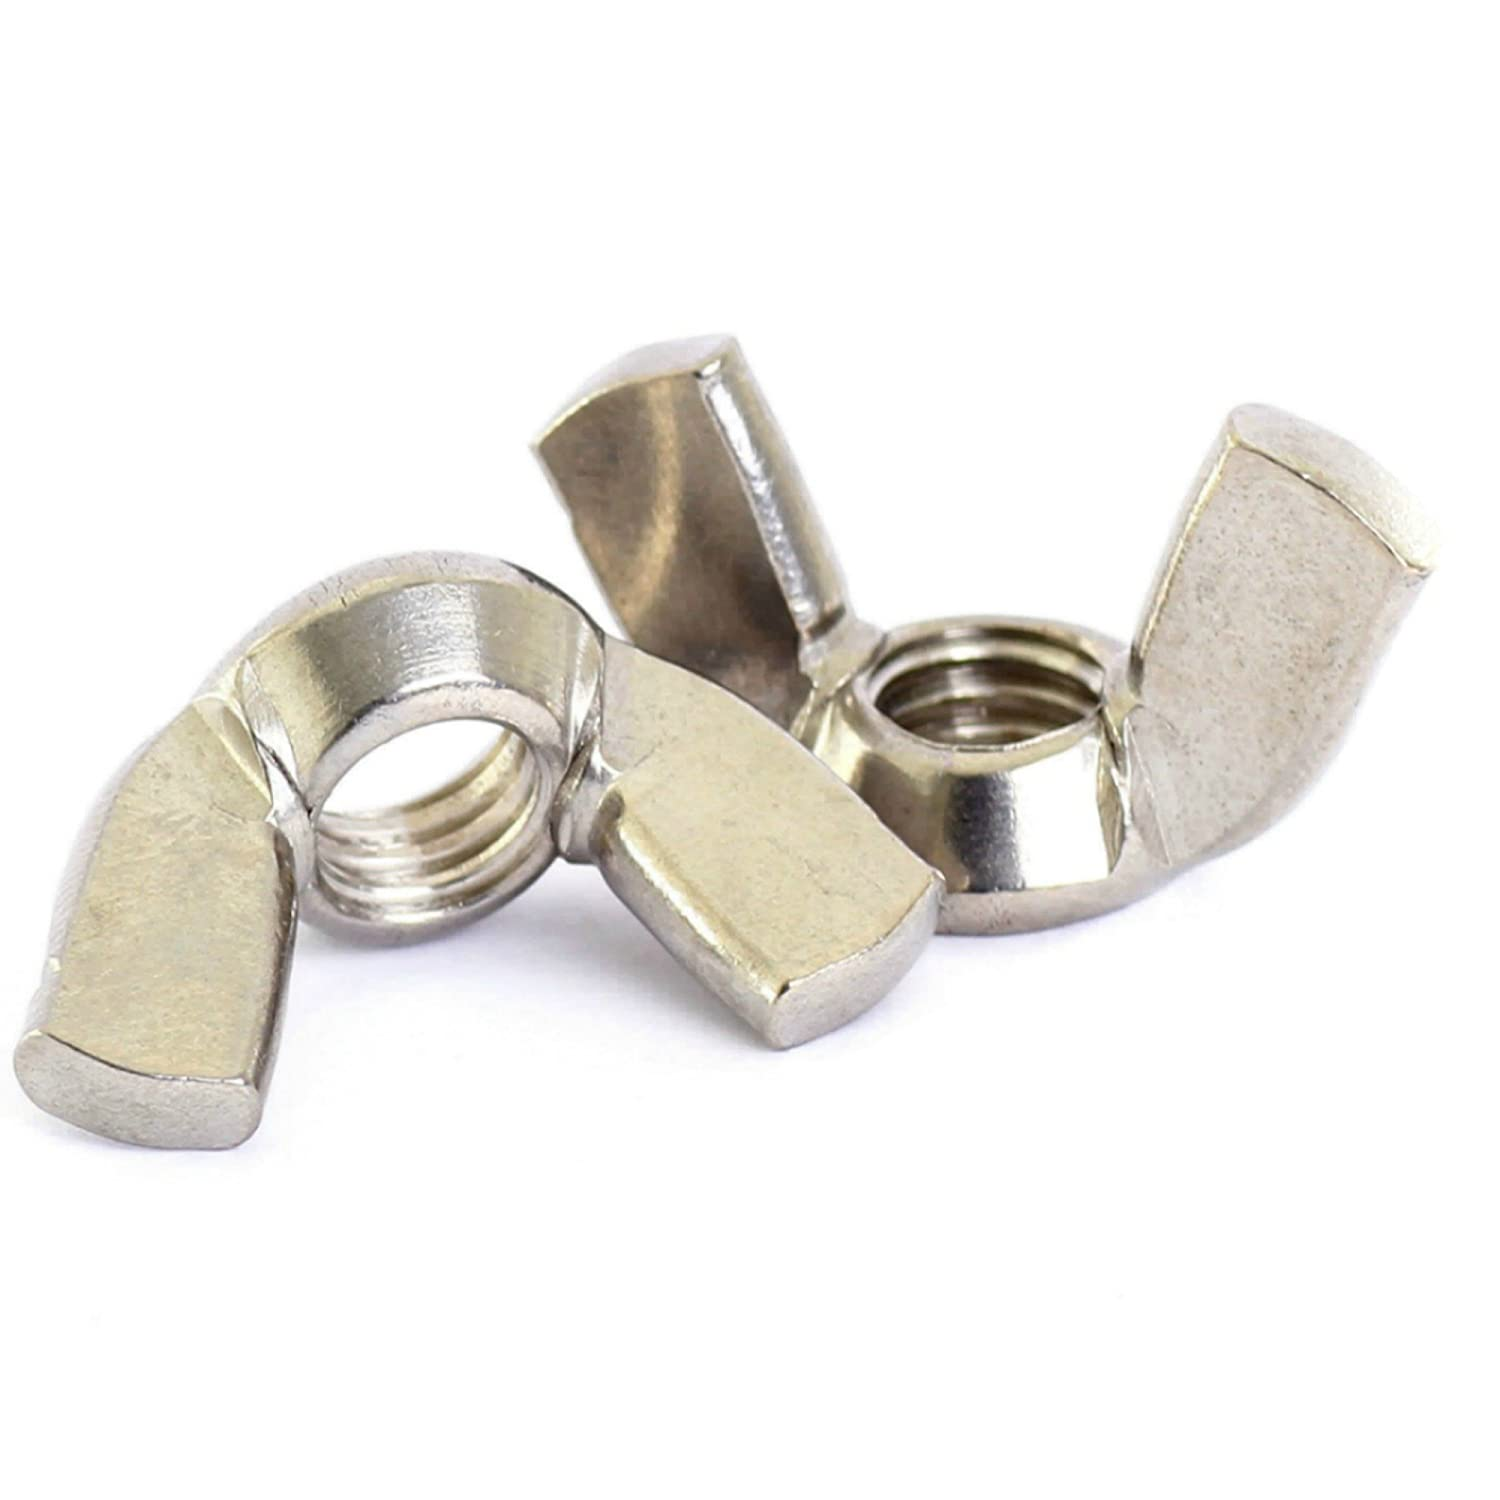 Bolt Base 10mm A2 Stainless Steel Wing Nuts Butterfly Nut DIN 315 M10 - 20